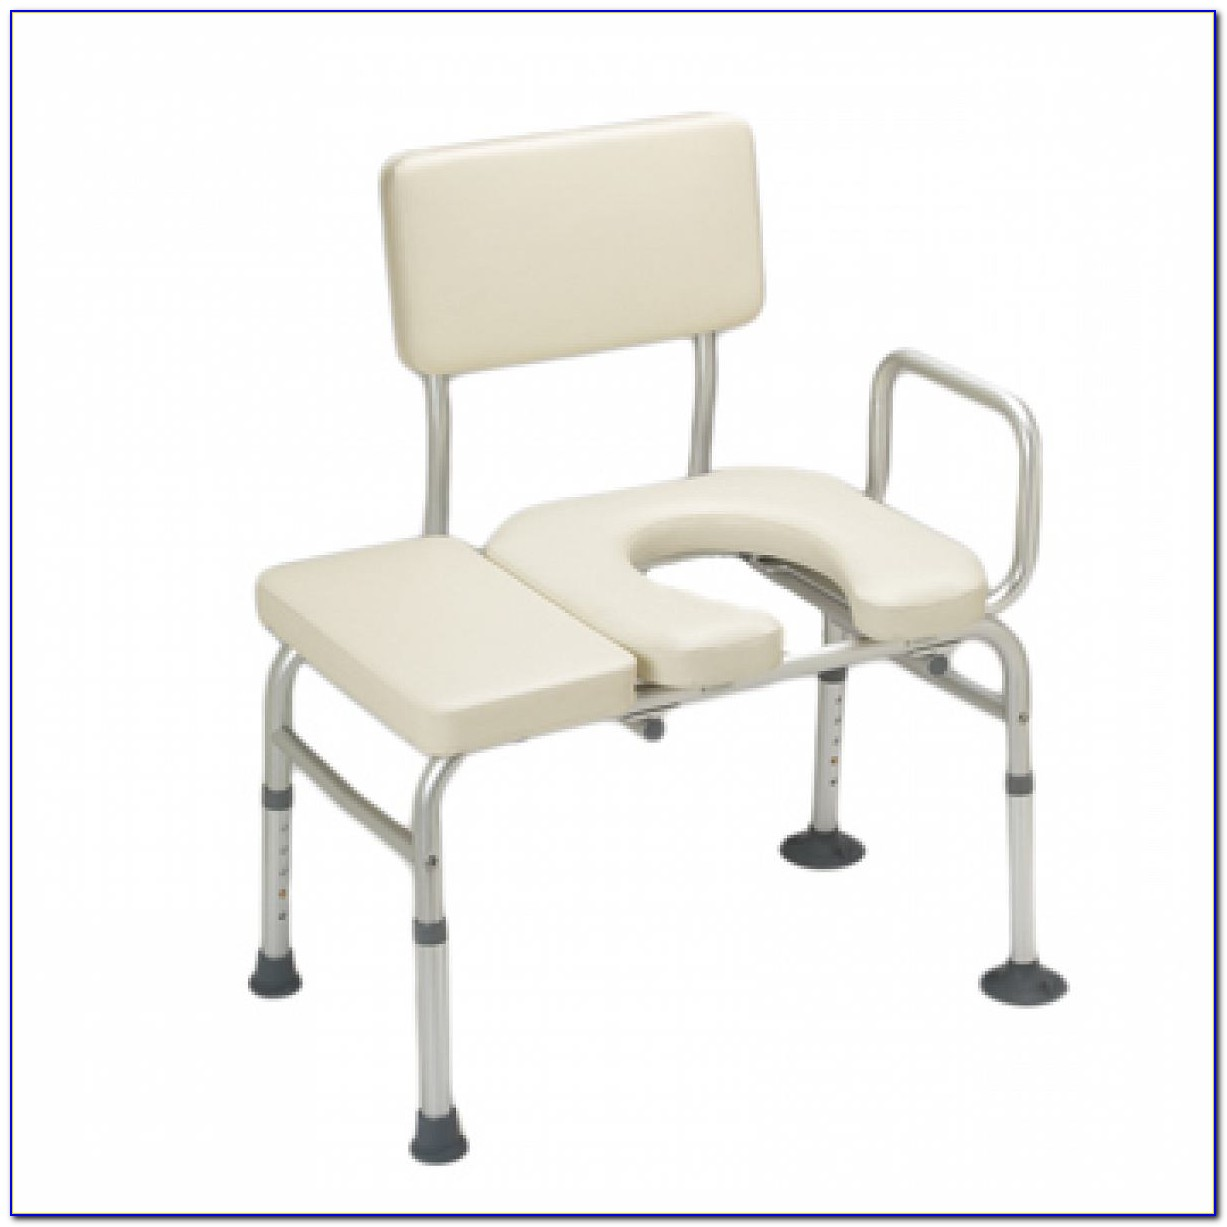 Bariatric Transfer Bench With Commode